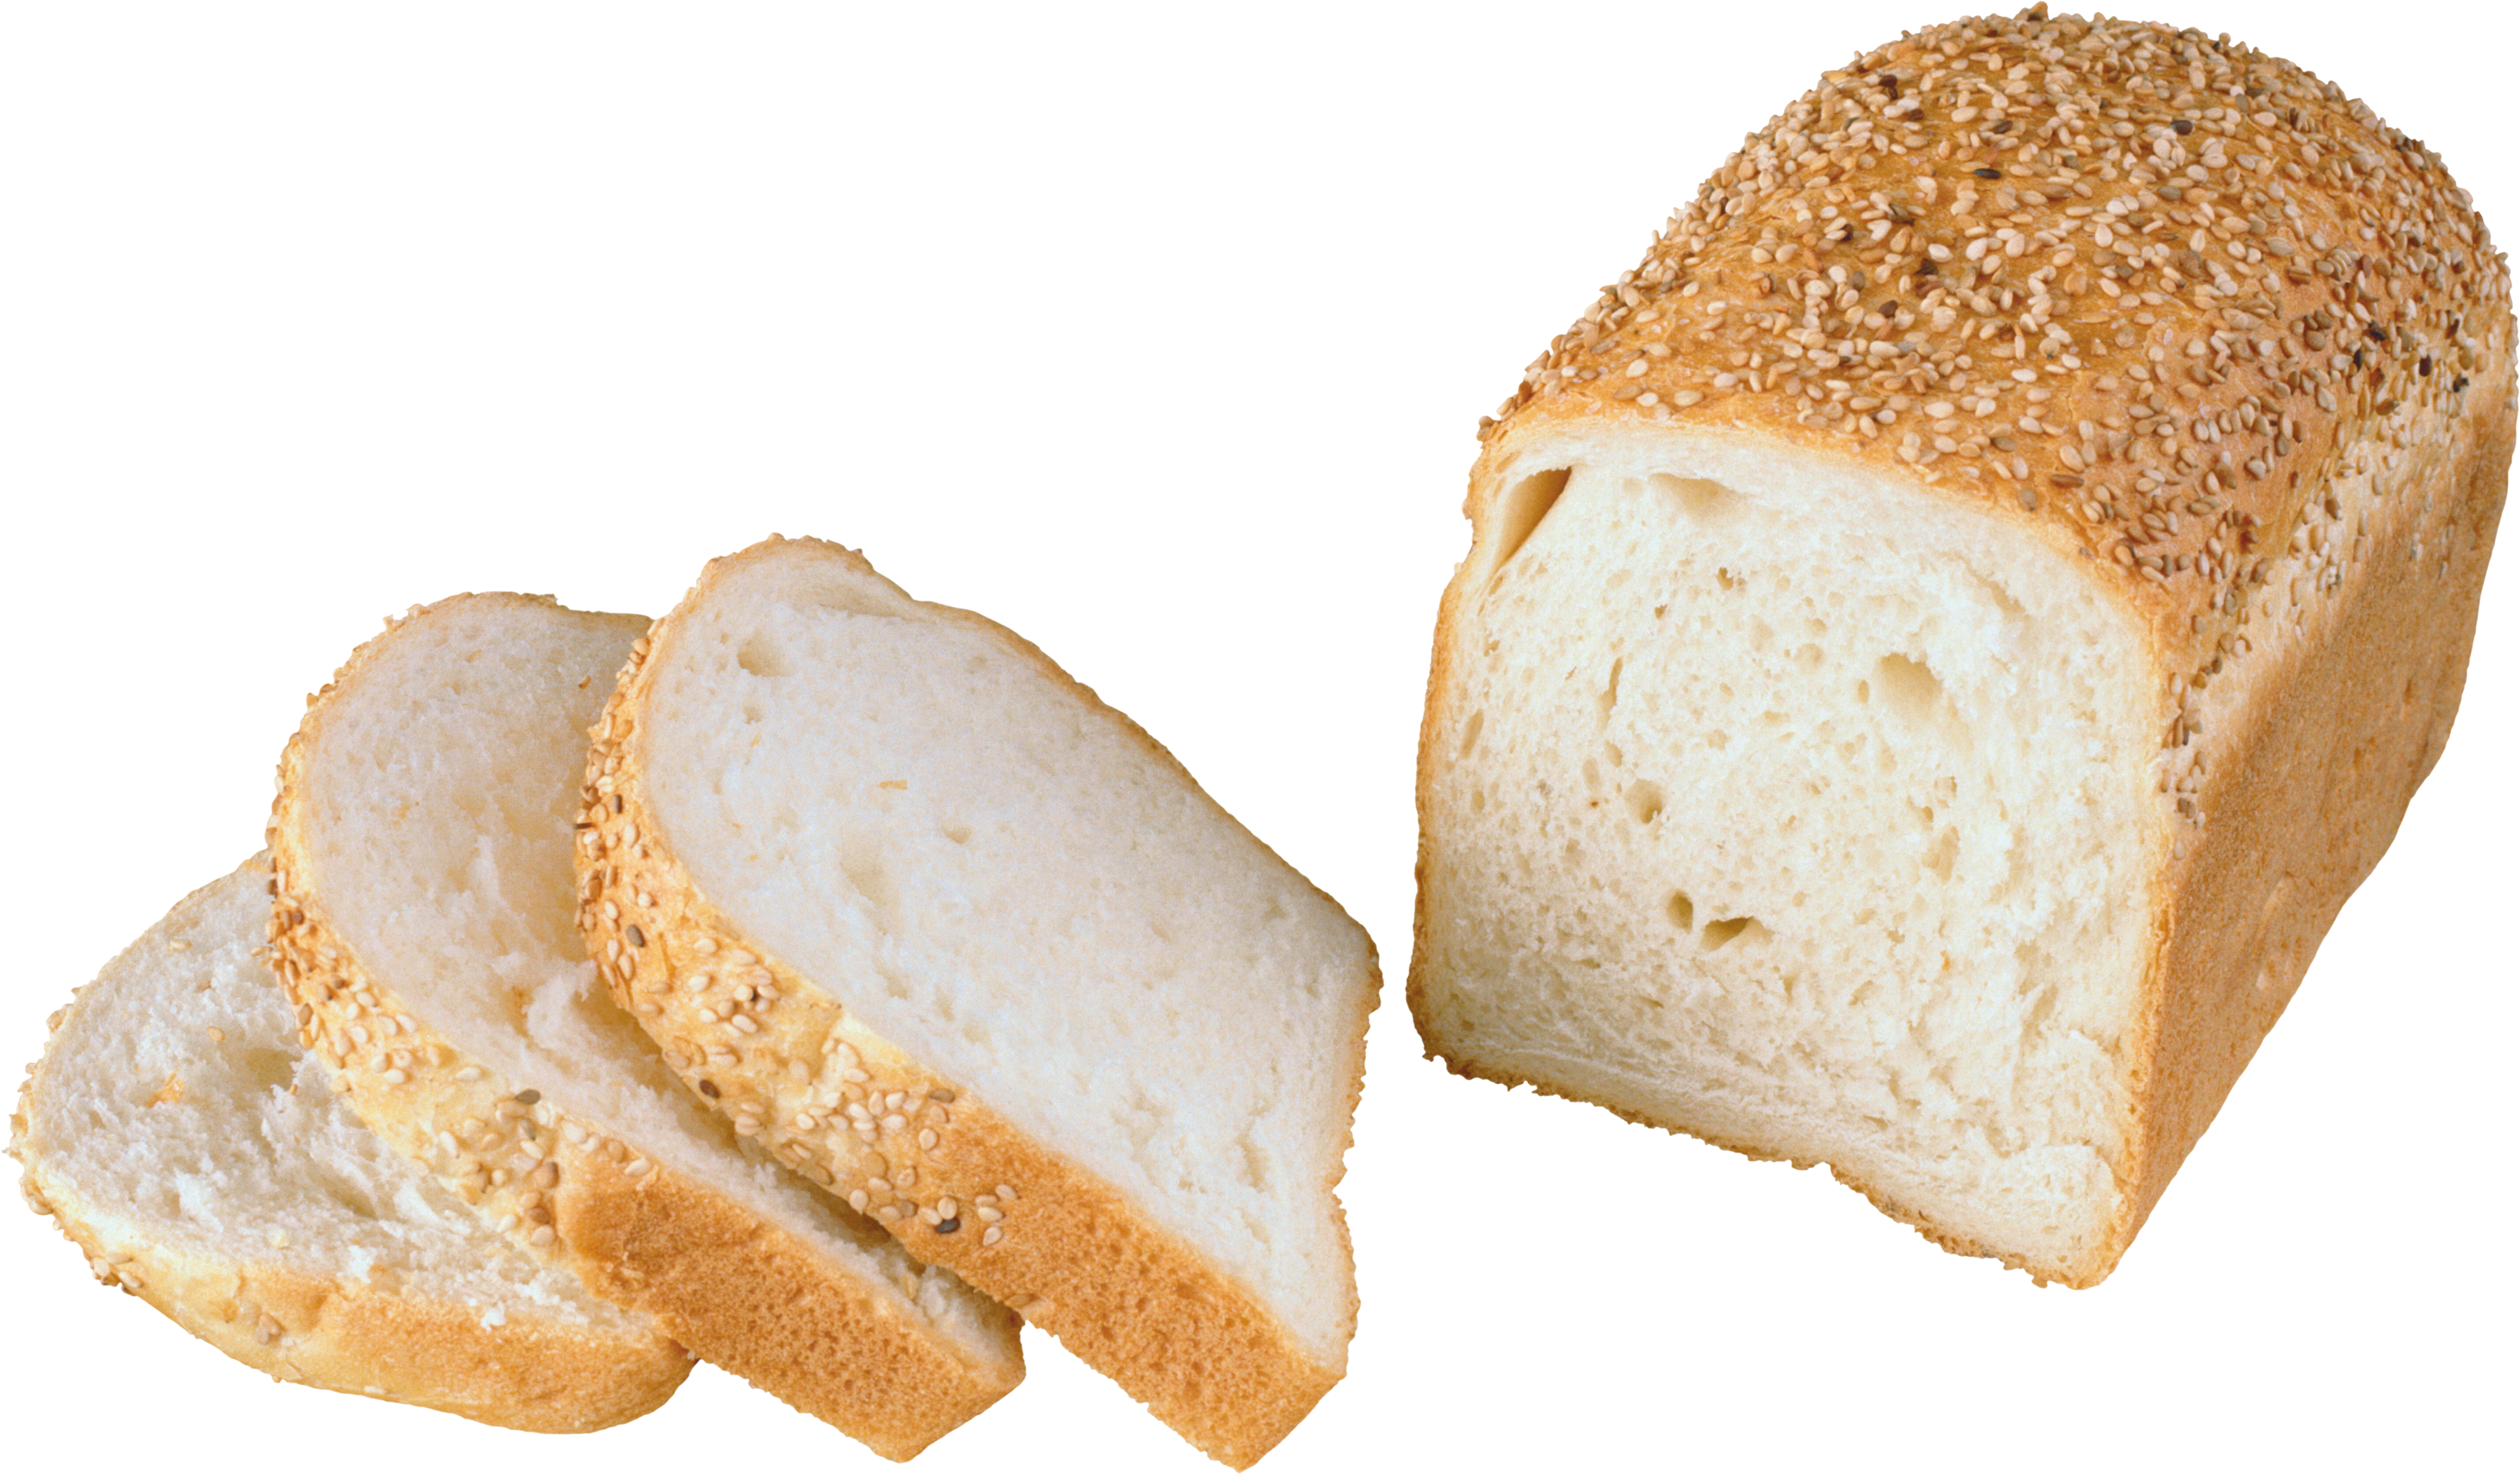 Png image free download. Clipart bread yeast bread